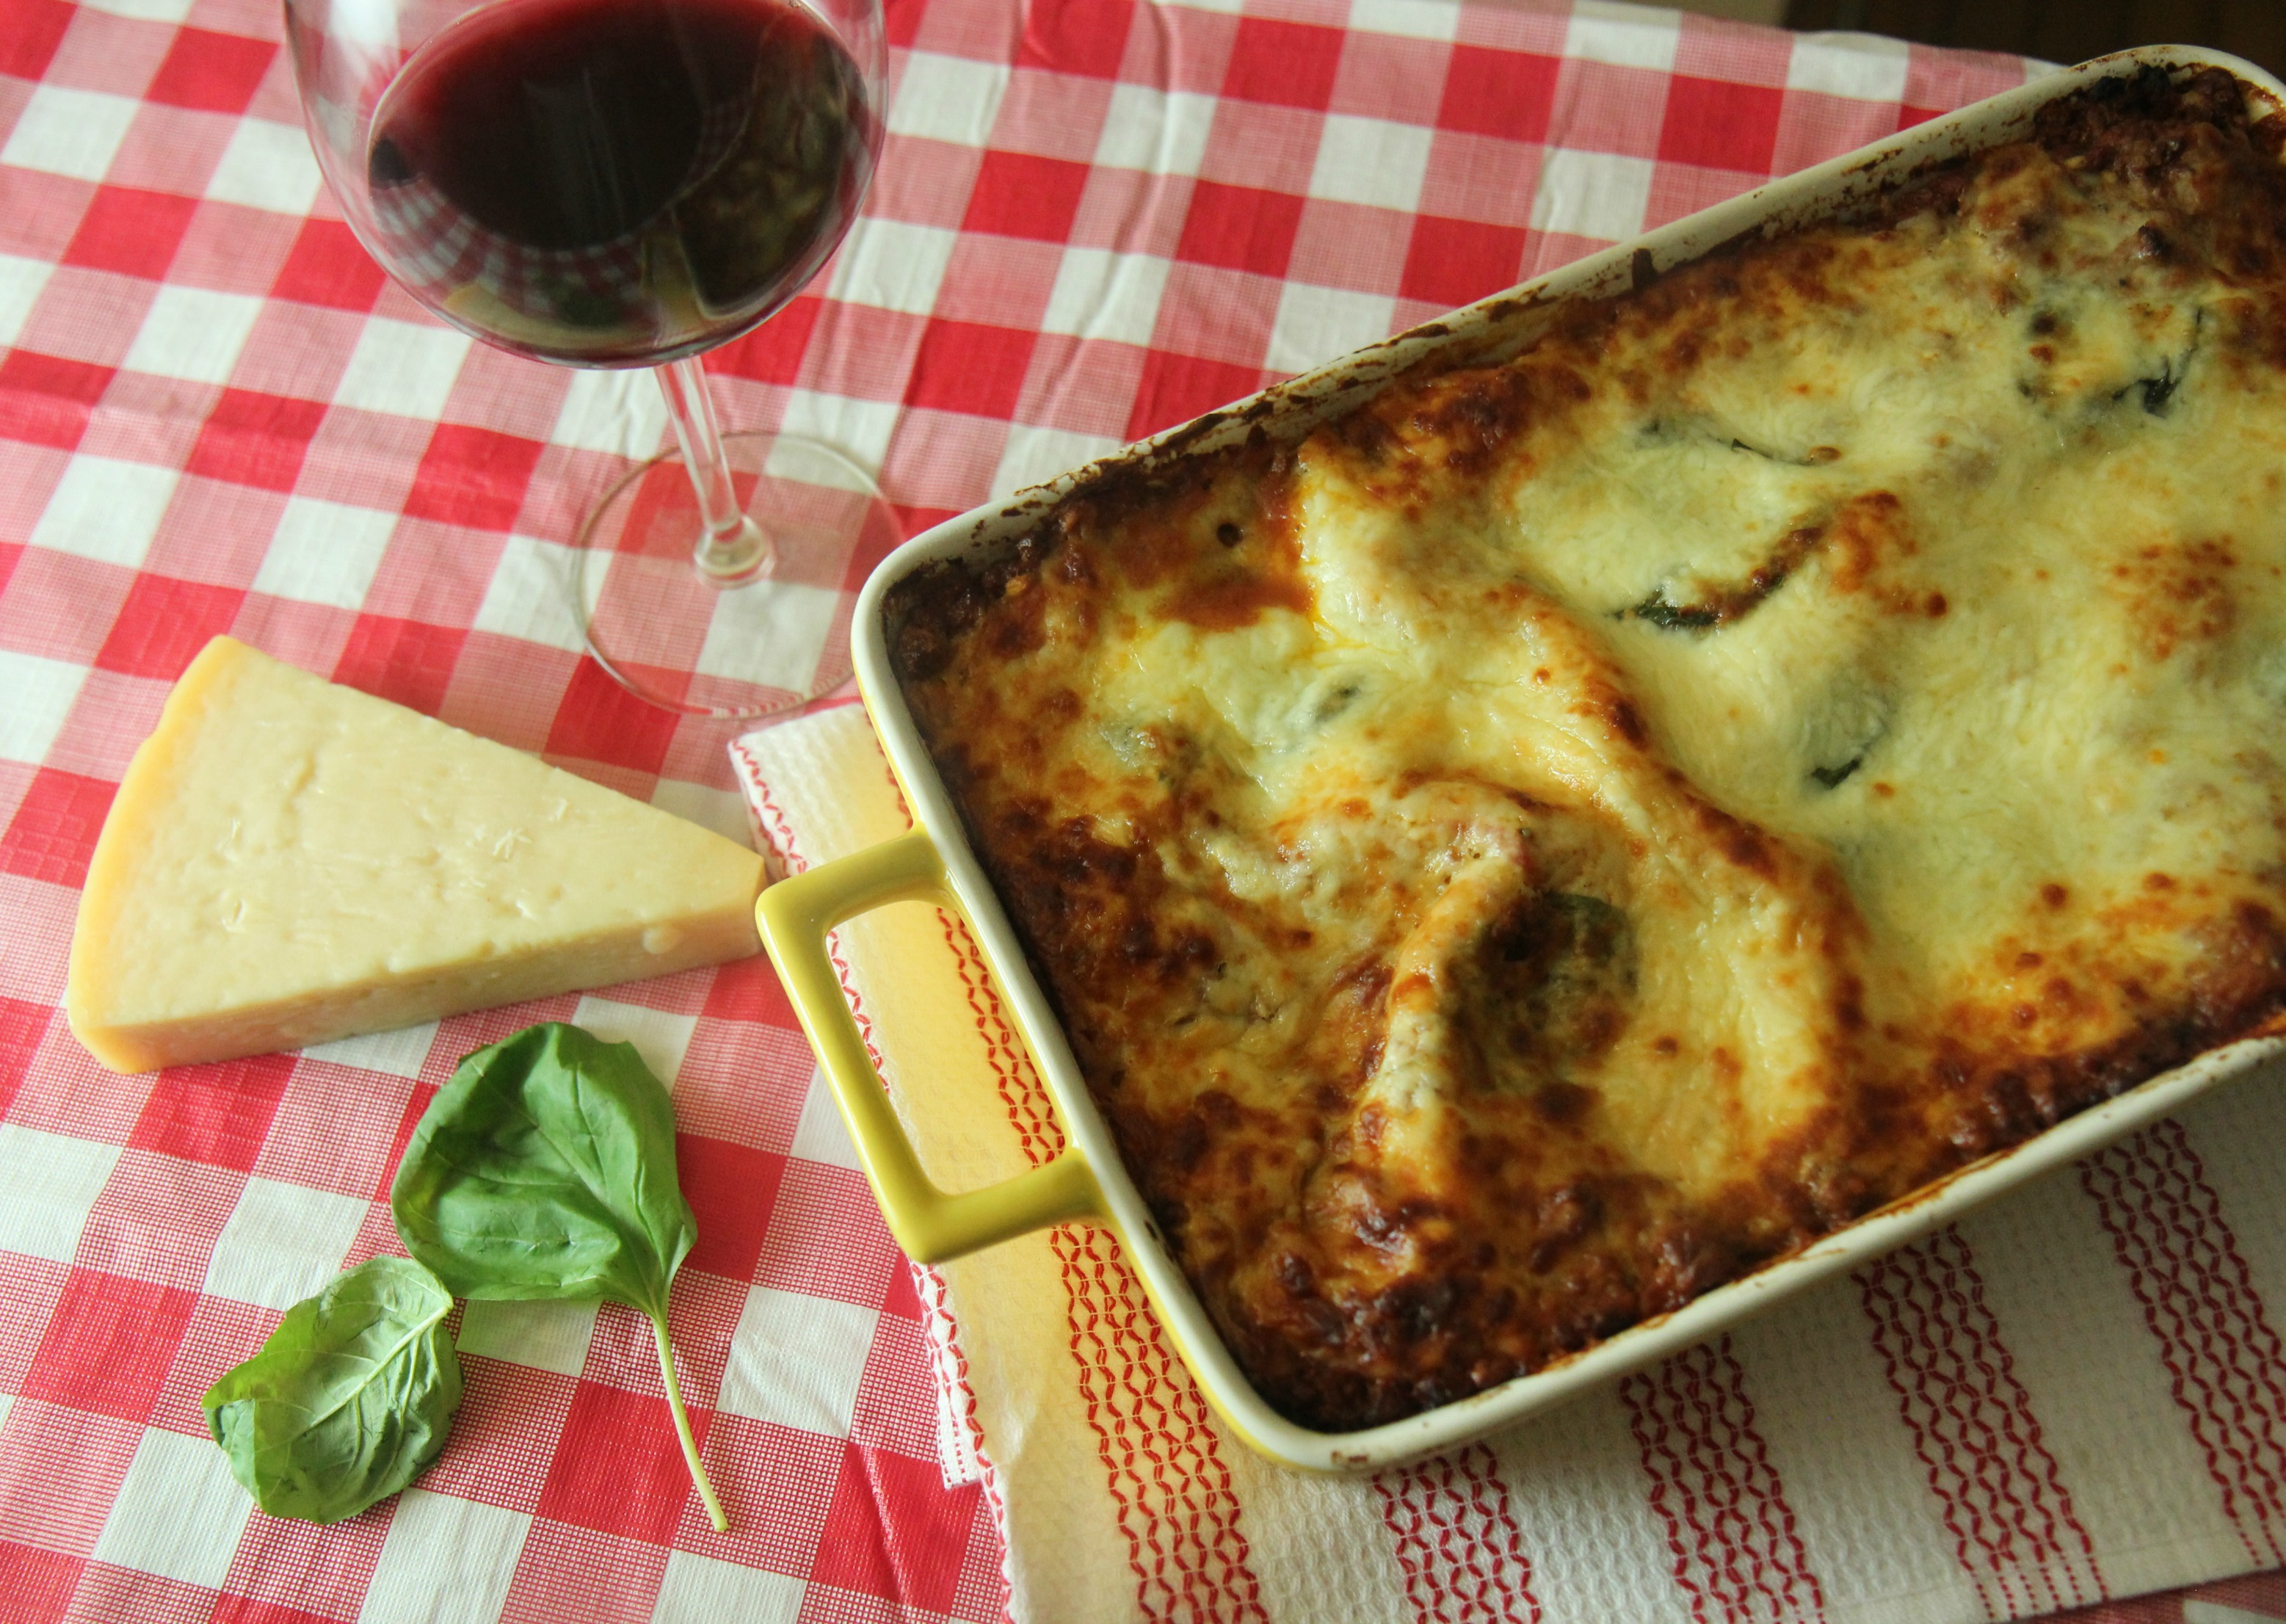 This was the BEST lasagna I've ever made! This is an easy recipe, perfect for beginners or anyone who loves a delicious lasagna!